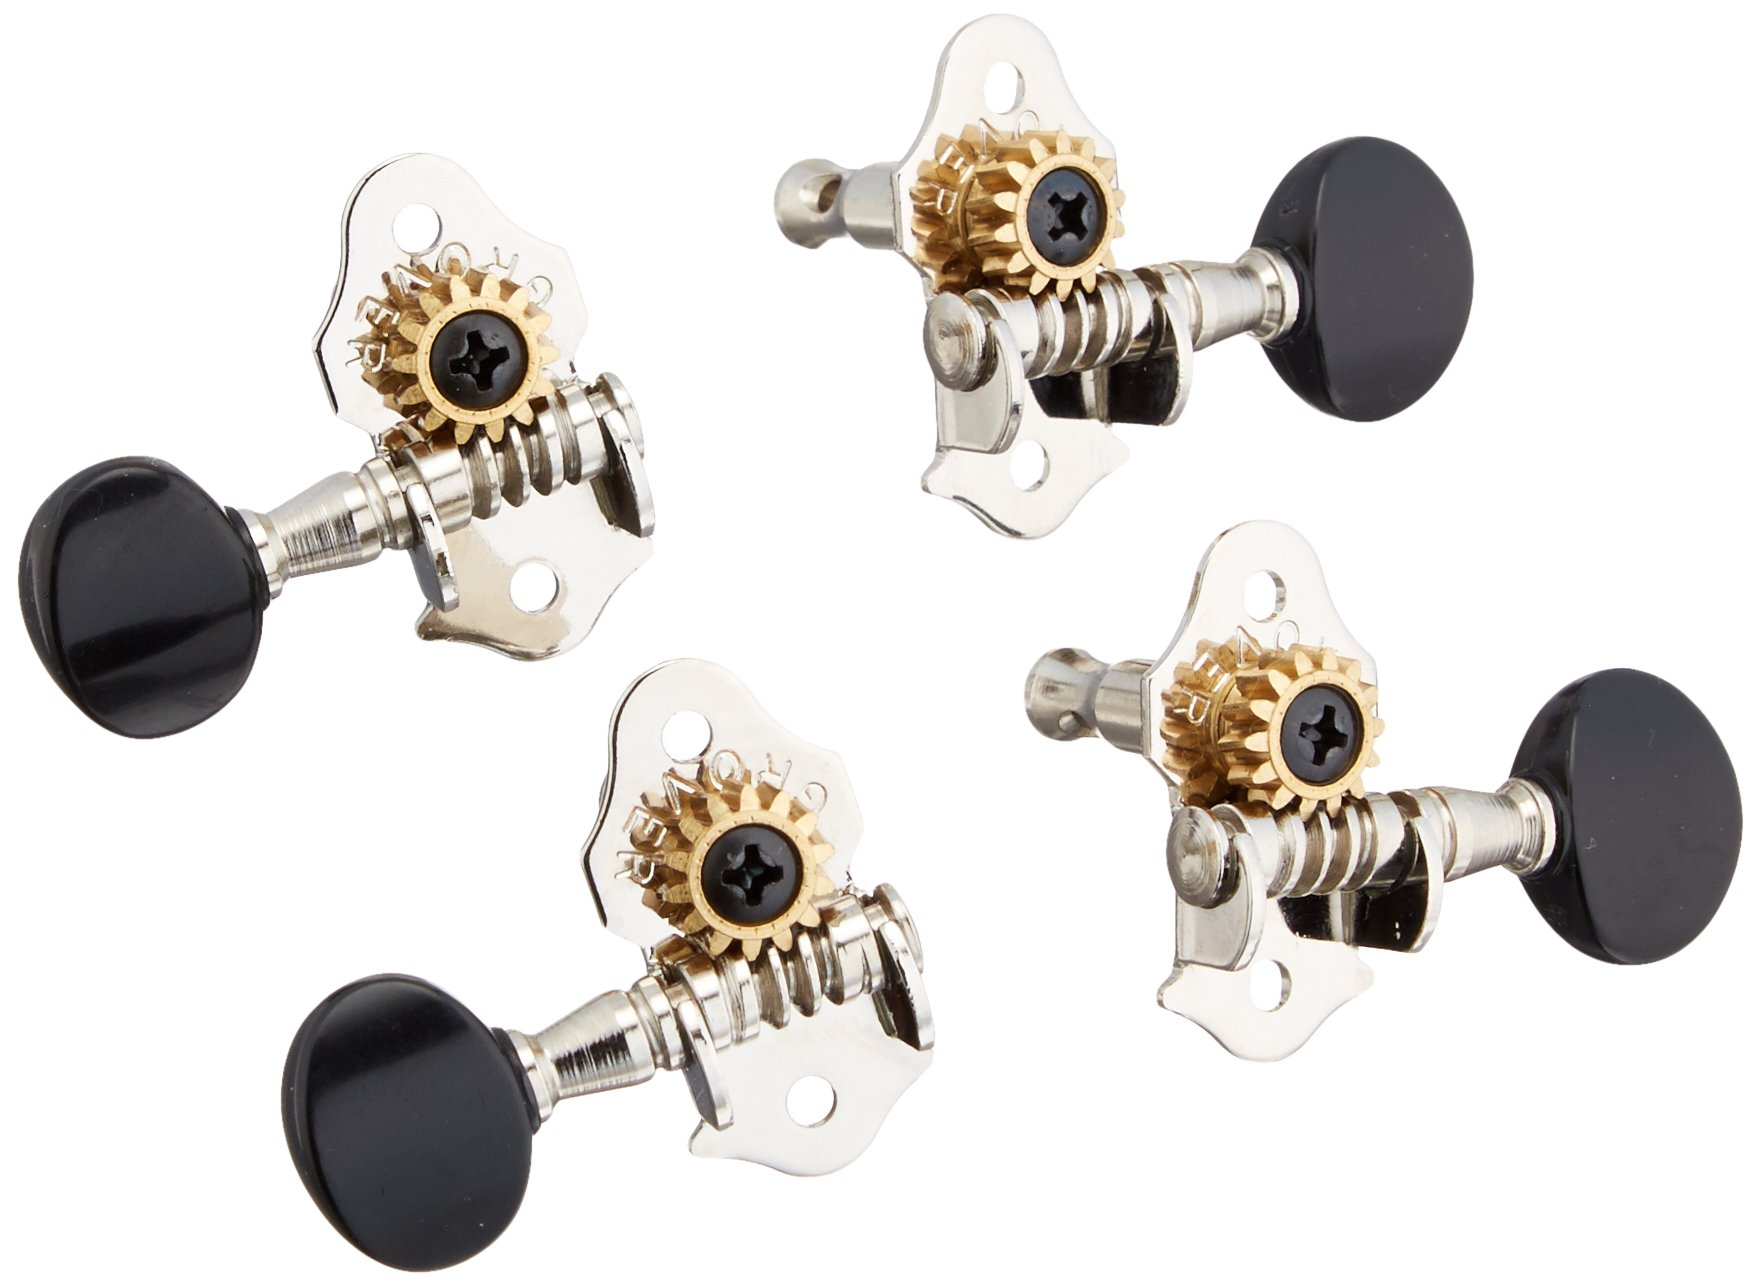 Grover 9NB Sta-Tite Ukulele Tuners, Nickel with Black Buttons